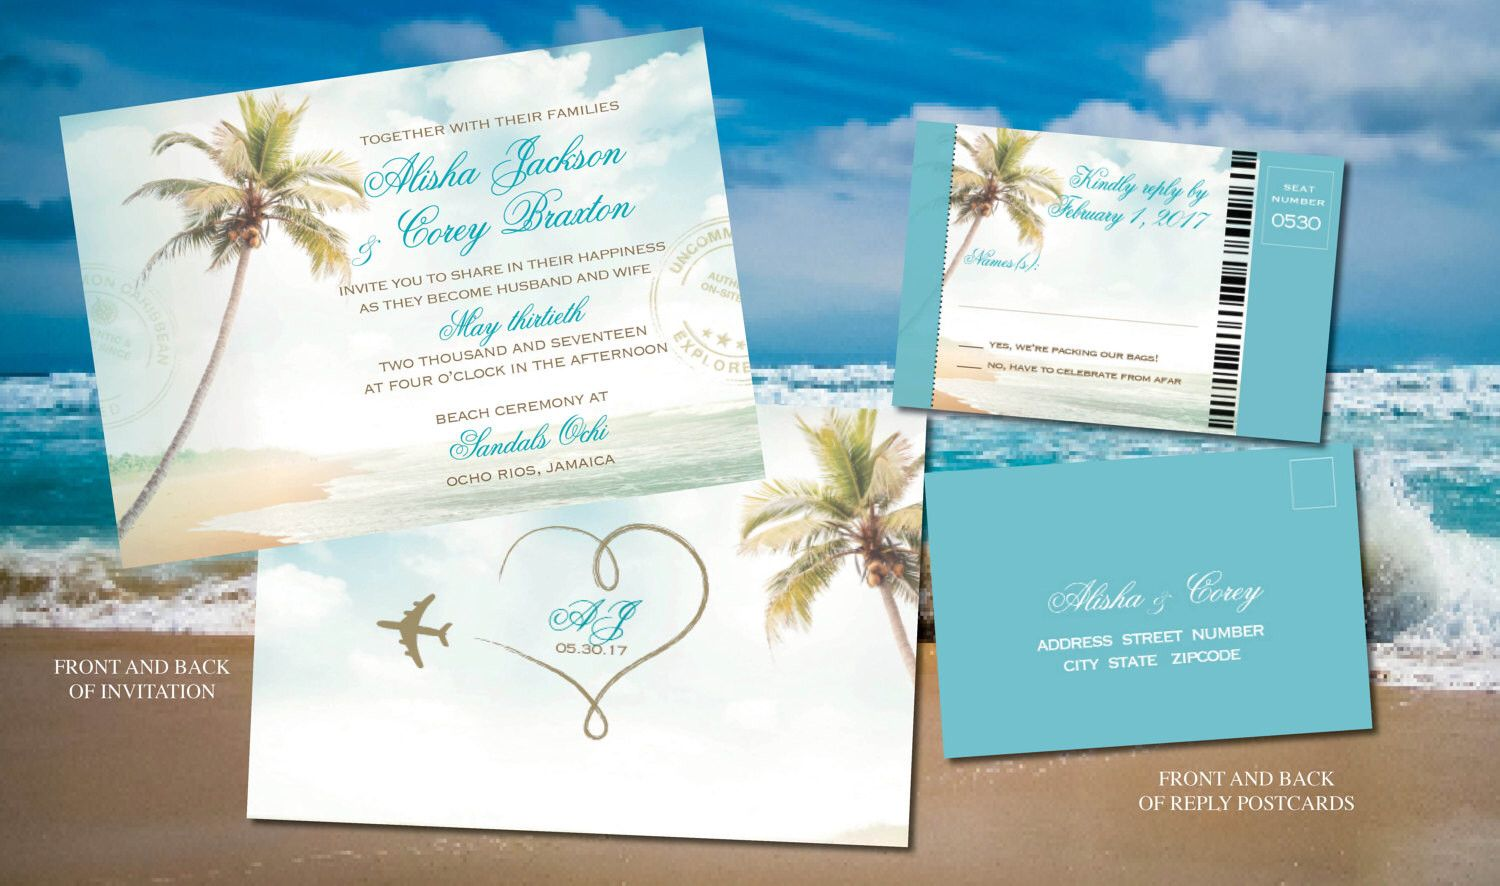 Beach Ceremony Wedding Invites in Turquoise, Gold | Destination ...